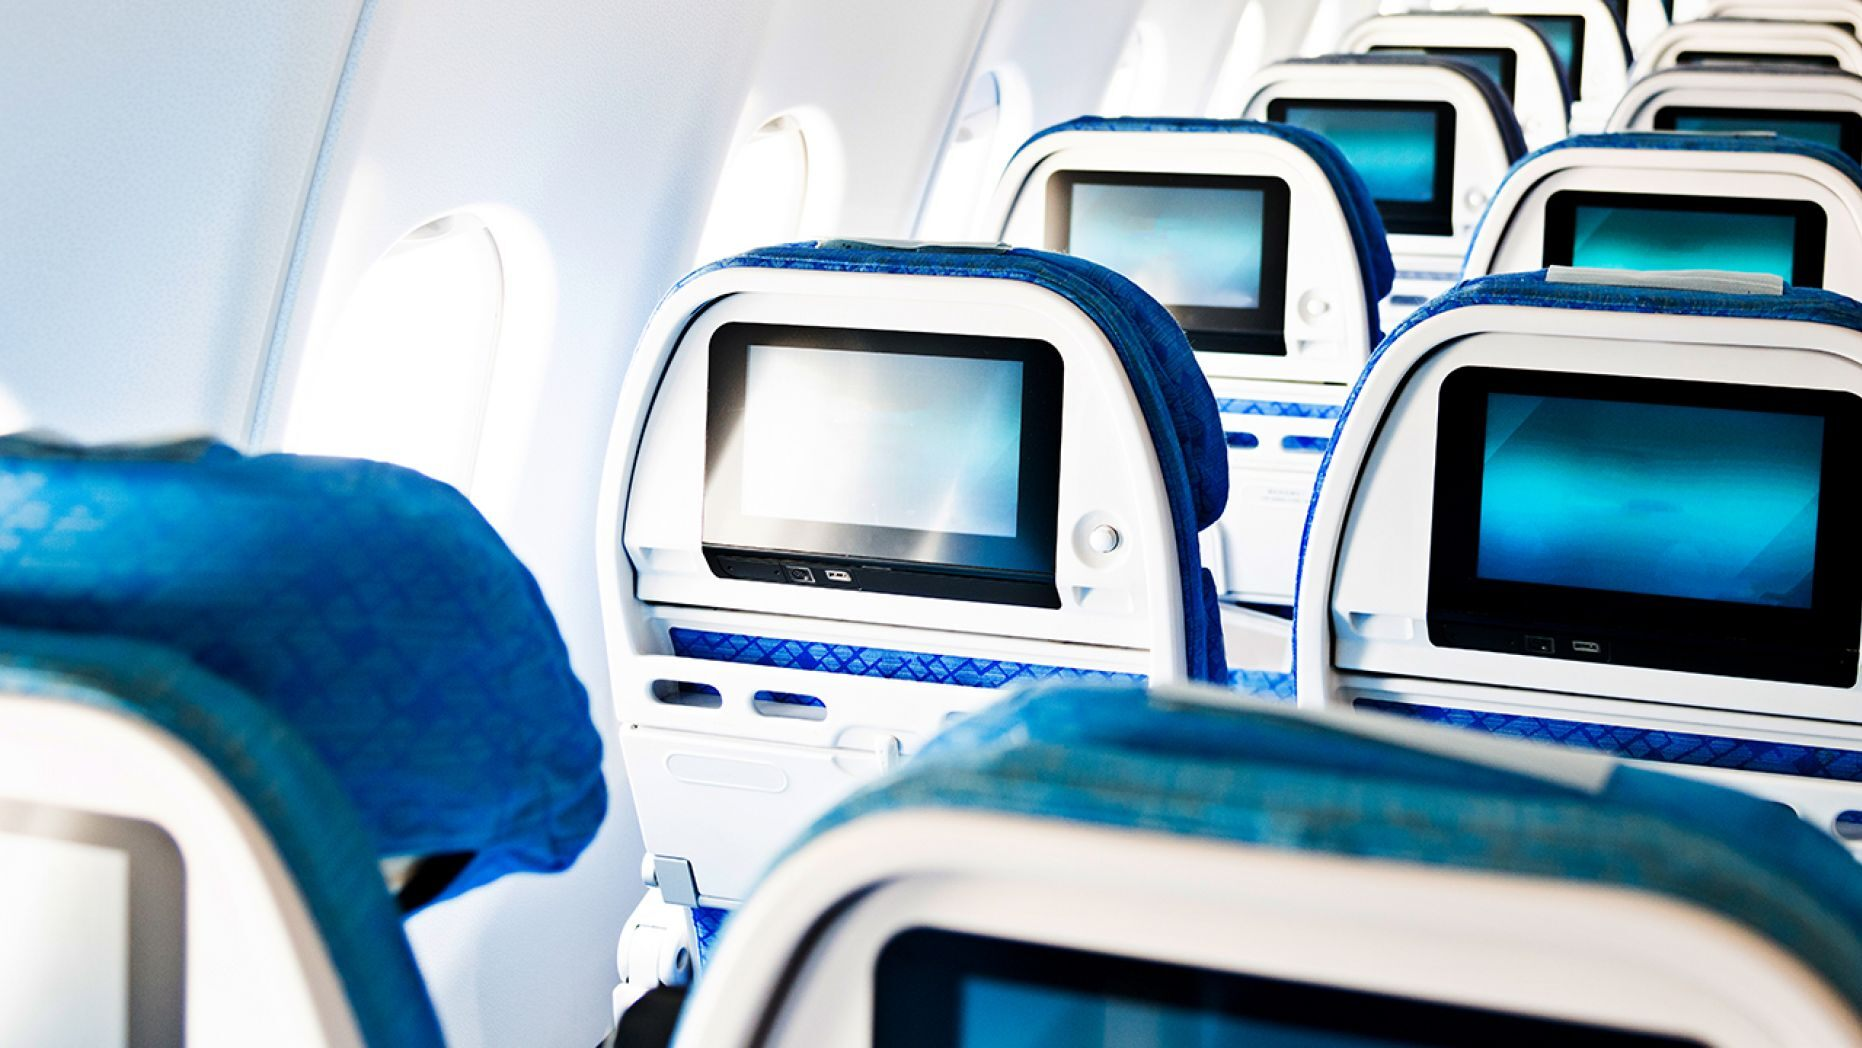 Airlines phase out of seat-back screen